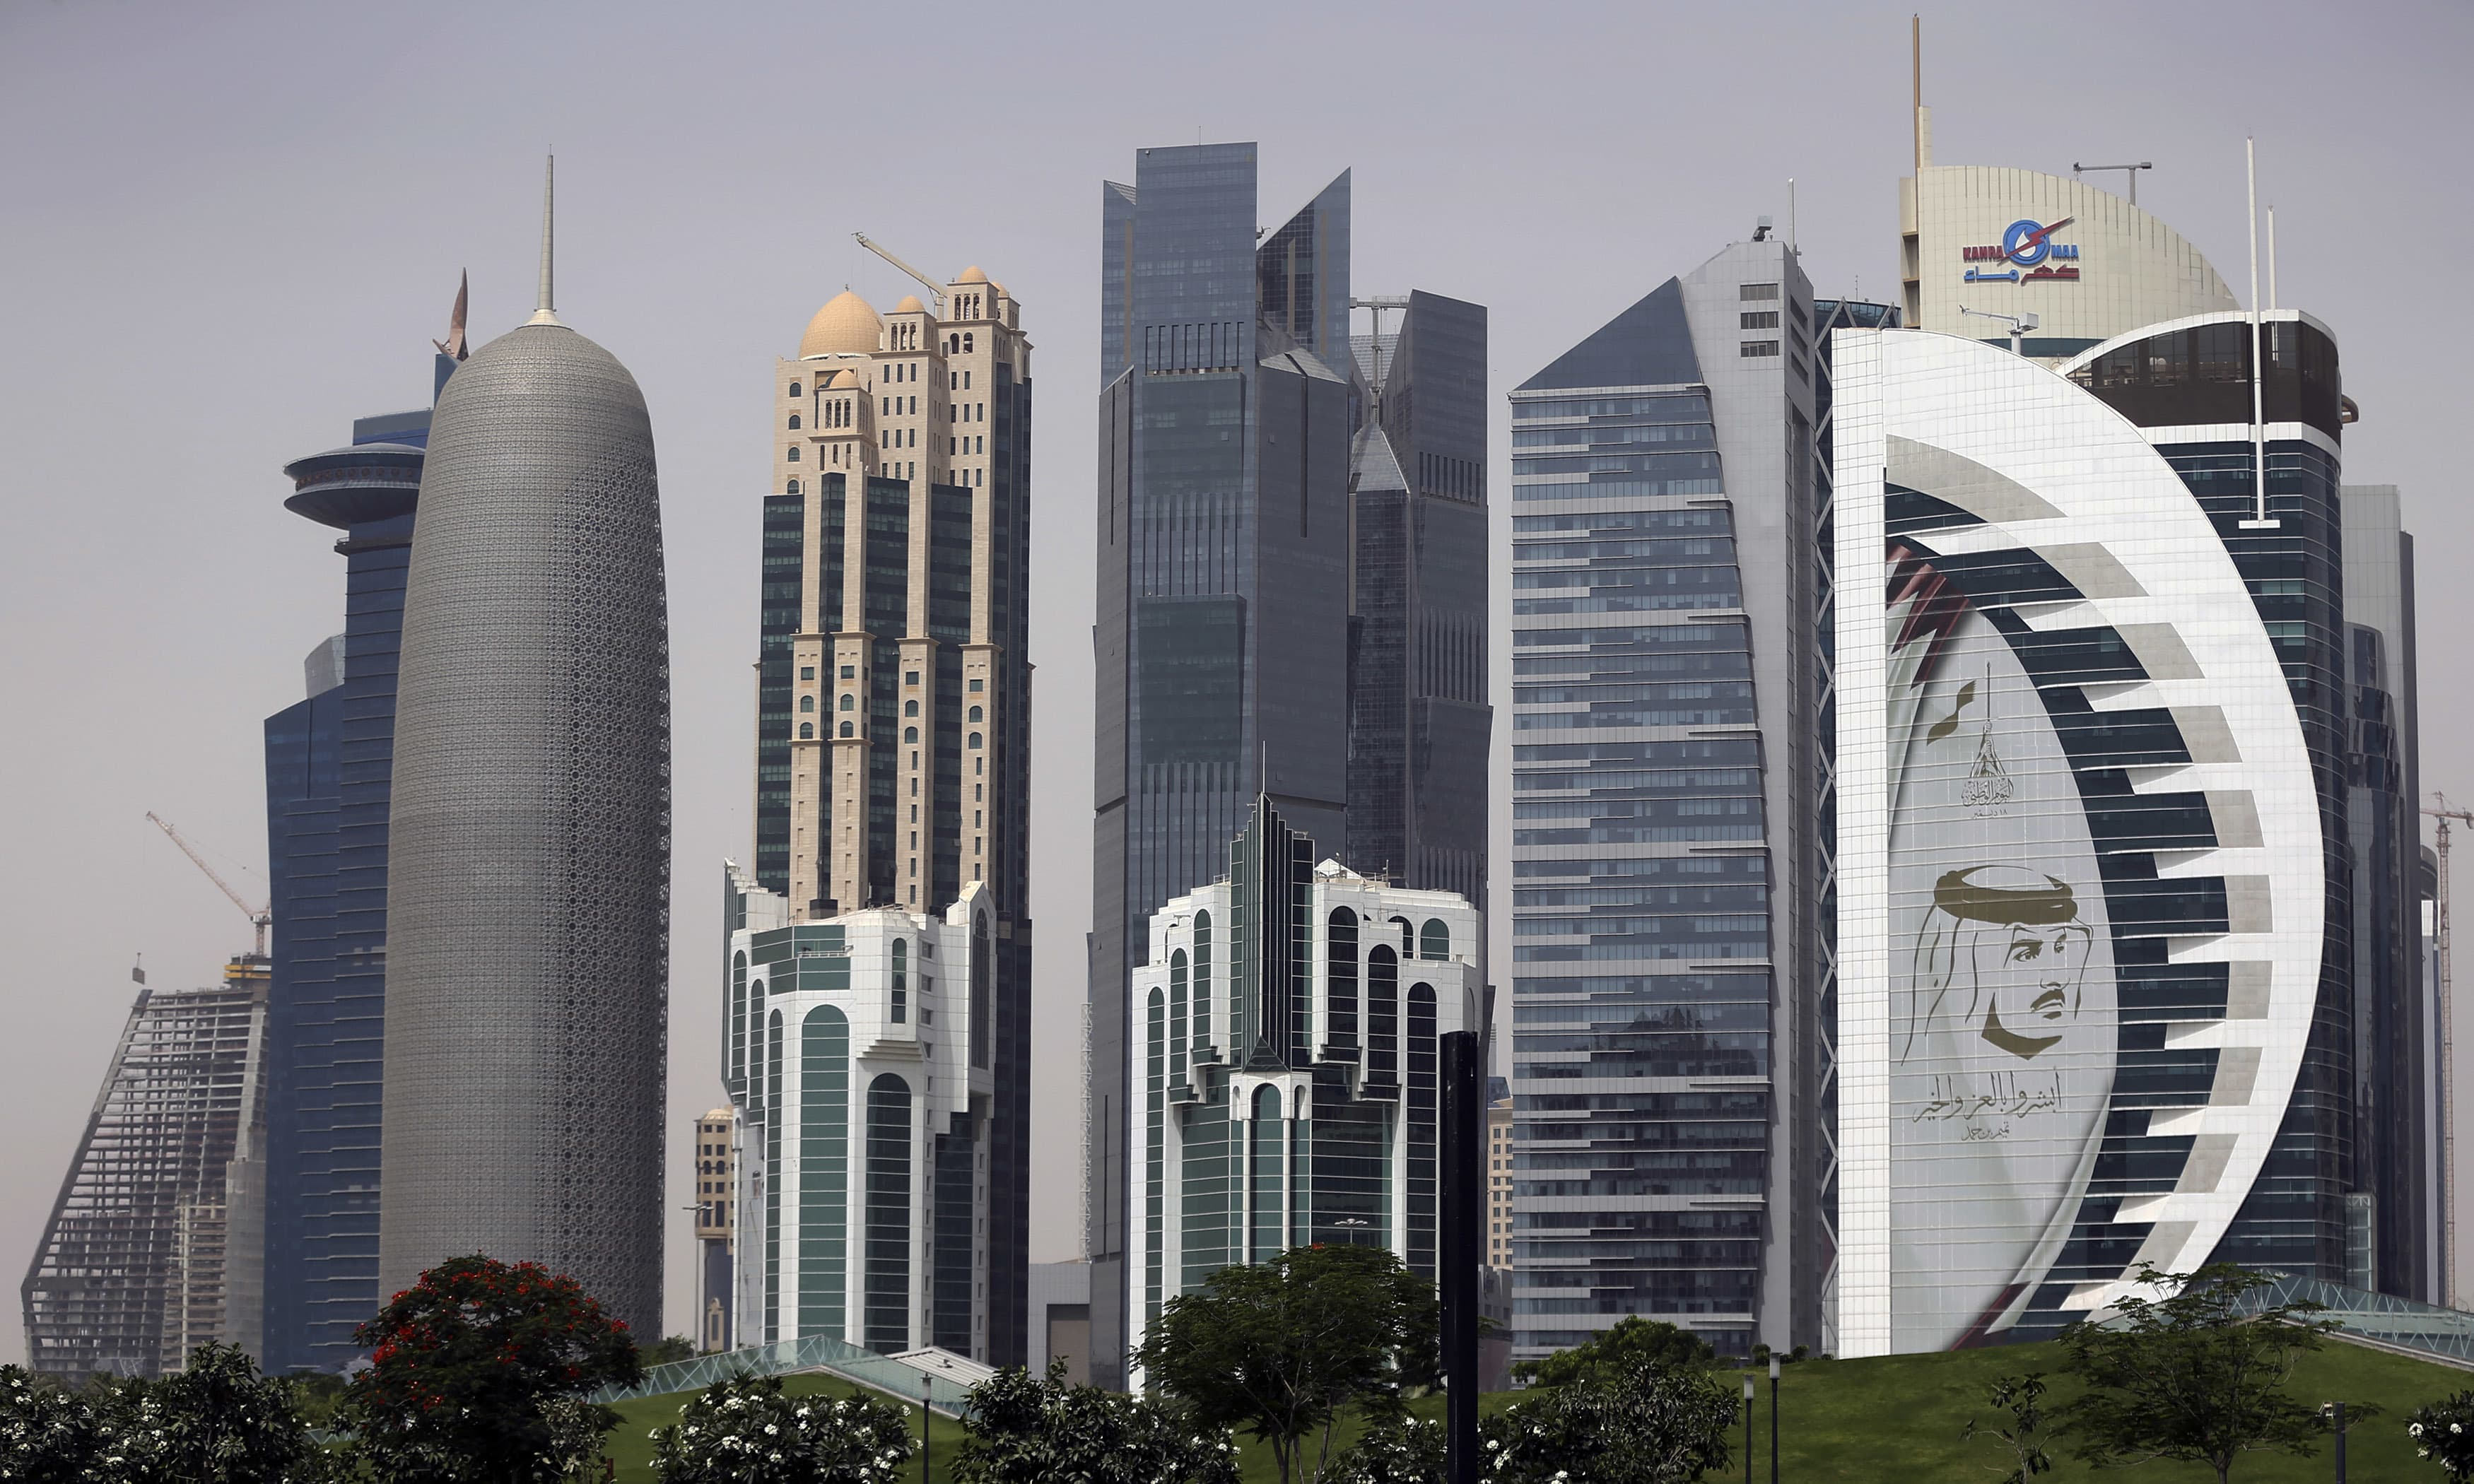 In this May 5, 2018 photo, a giant image of the Emir of Qatar Sheikh Tamim bin Hamad Al Thani, adorns a tower in Doha, Qatar. At a time when the U.S. hopes to exert maximum pressure on Iran, a regional bloc created by Gulf Arab countries to counter Tehran looks increasingly more divided ahead of the anniversary of the diplomatic crisis in Qatar. (AP Photo/Kamran Jebreili) — Copyright 2018 The Associated Press. All rights reserved.